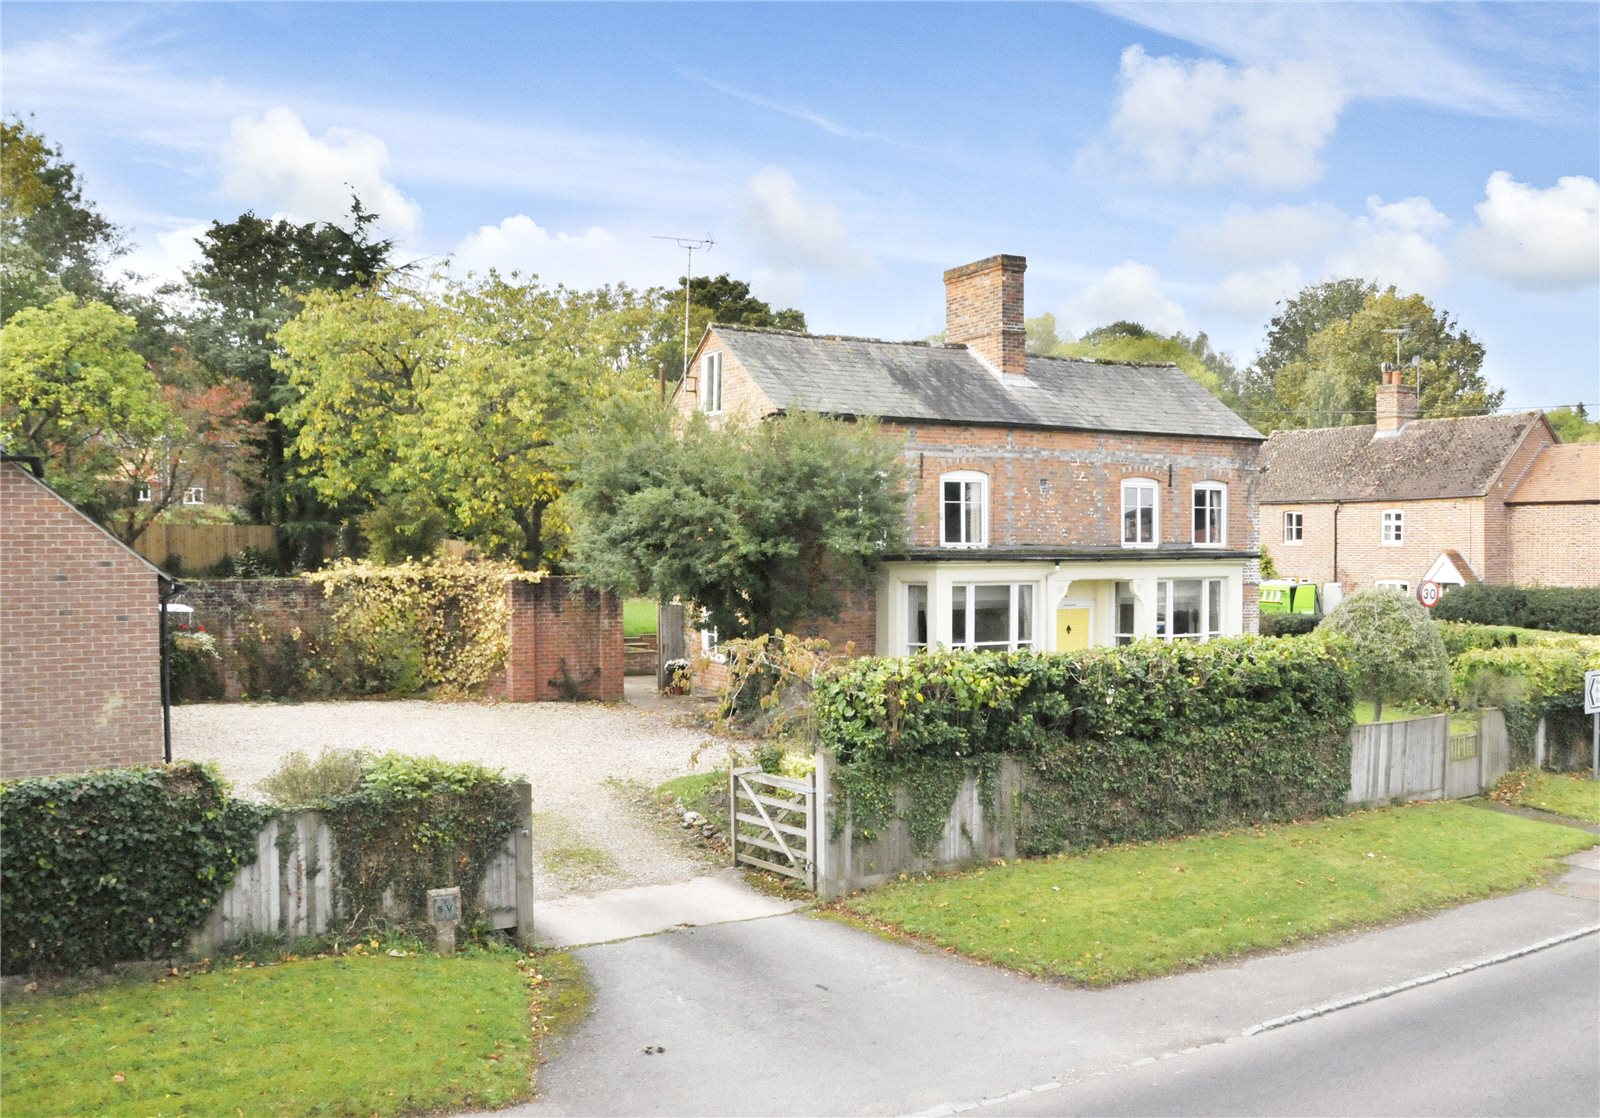 獨棟家庭住宅 為 出售 在 Newbury Road, Wickham, Newbury, Berkshire, RG20 Newbury, 英格蘭